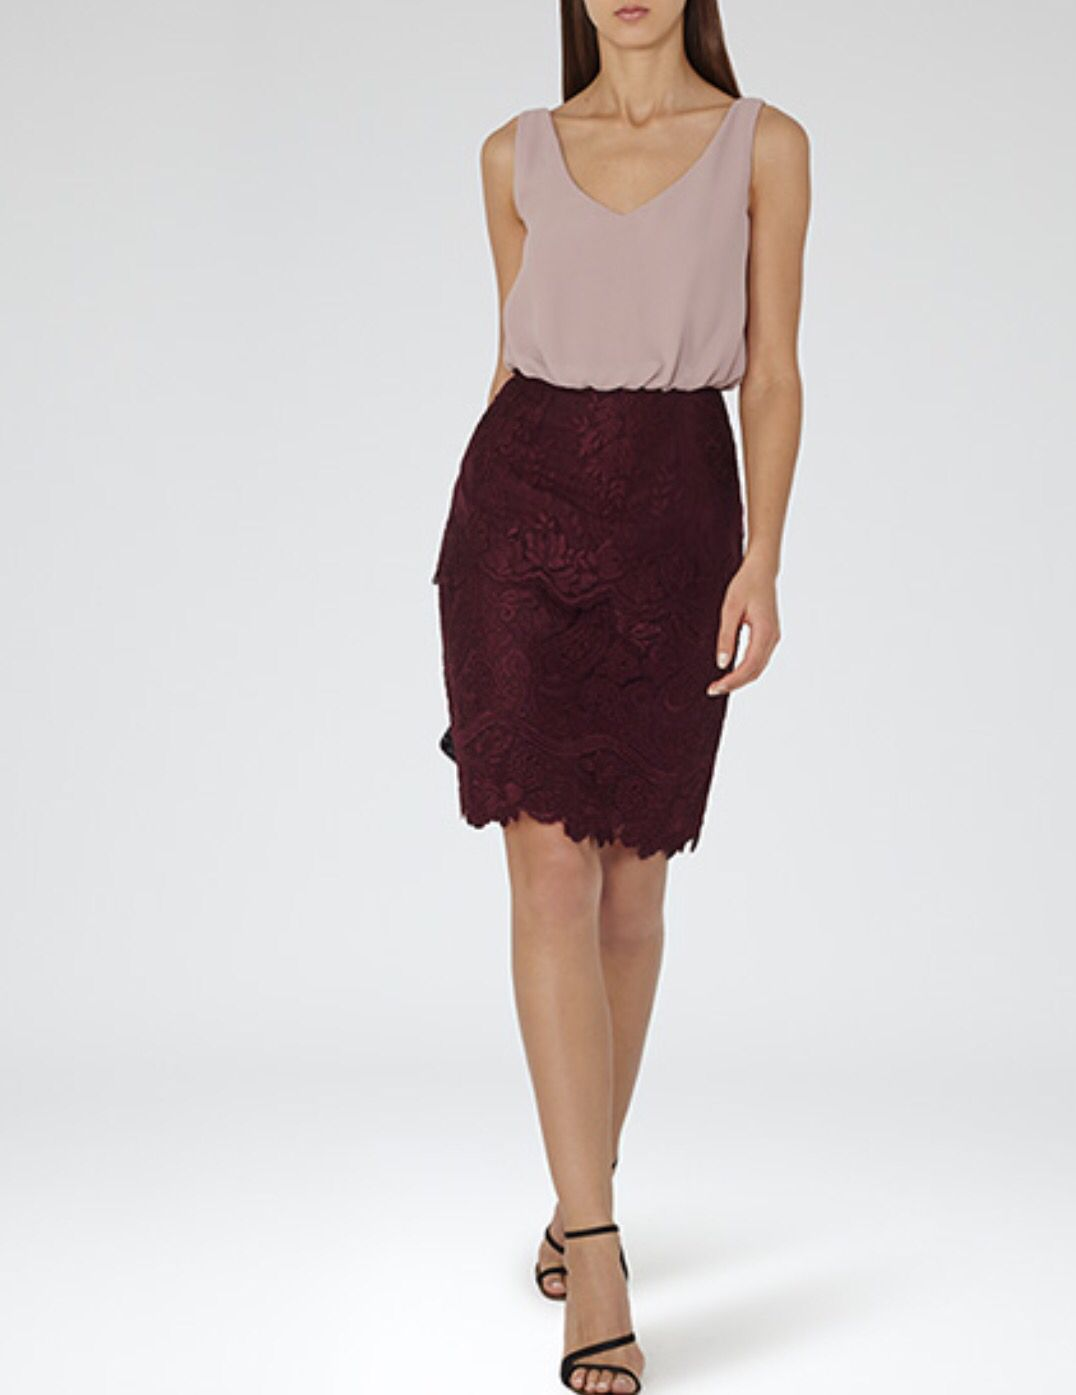 ae000d719f Reiss cream and burgundy lace cocktail dress | Effortlessly Chic ...